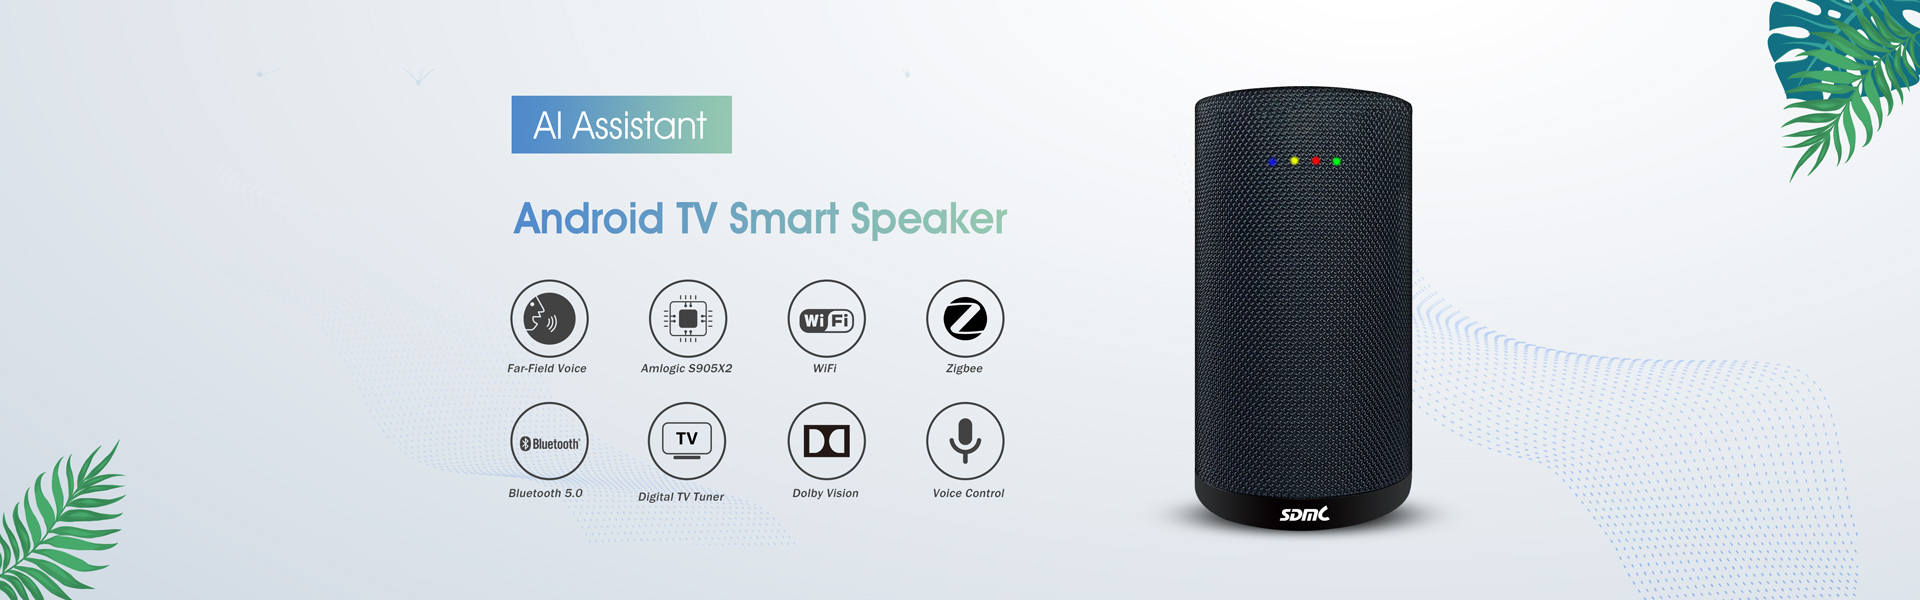 android tv box, wifi mesh router, smart speaker,Shenzhen SDMC Technology Co.,Ltd